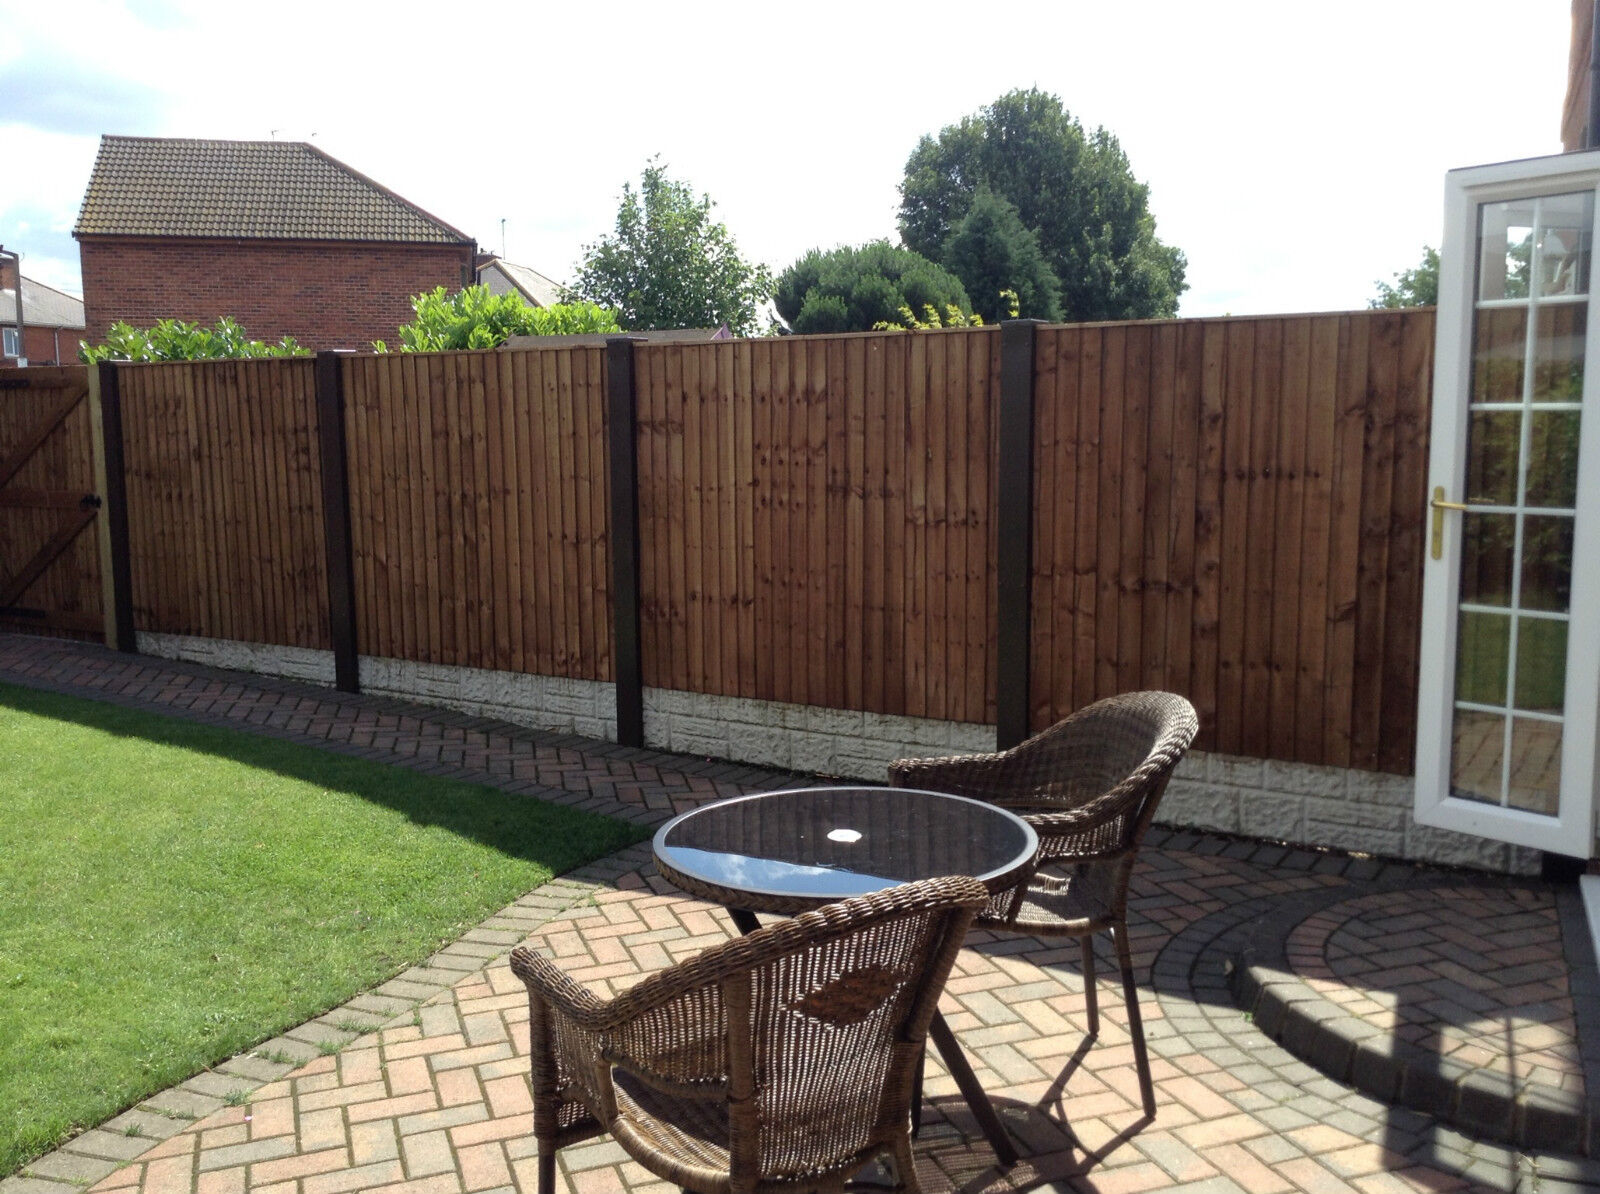 Concrete Fence Post Extender All Garden Fence Panels Fit Solid Steel 29 Colours For Sale Ebay